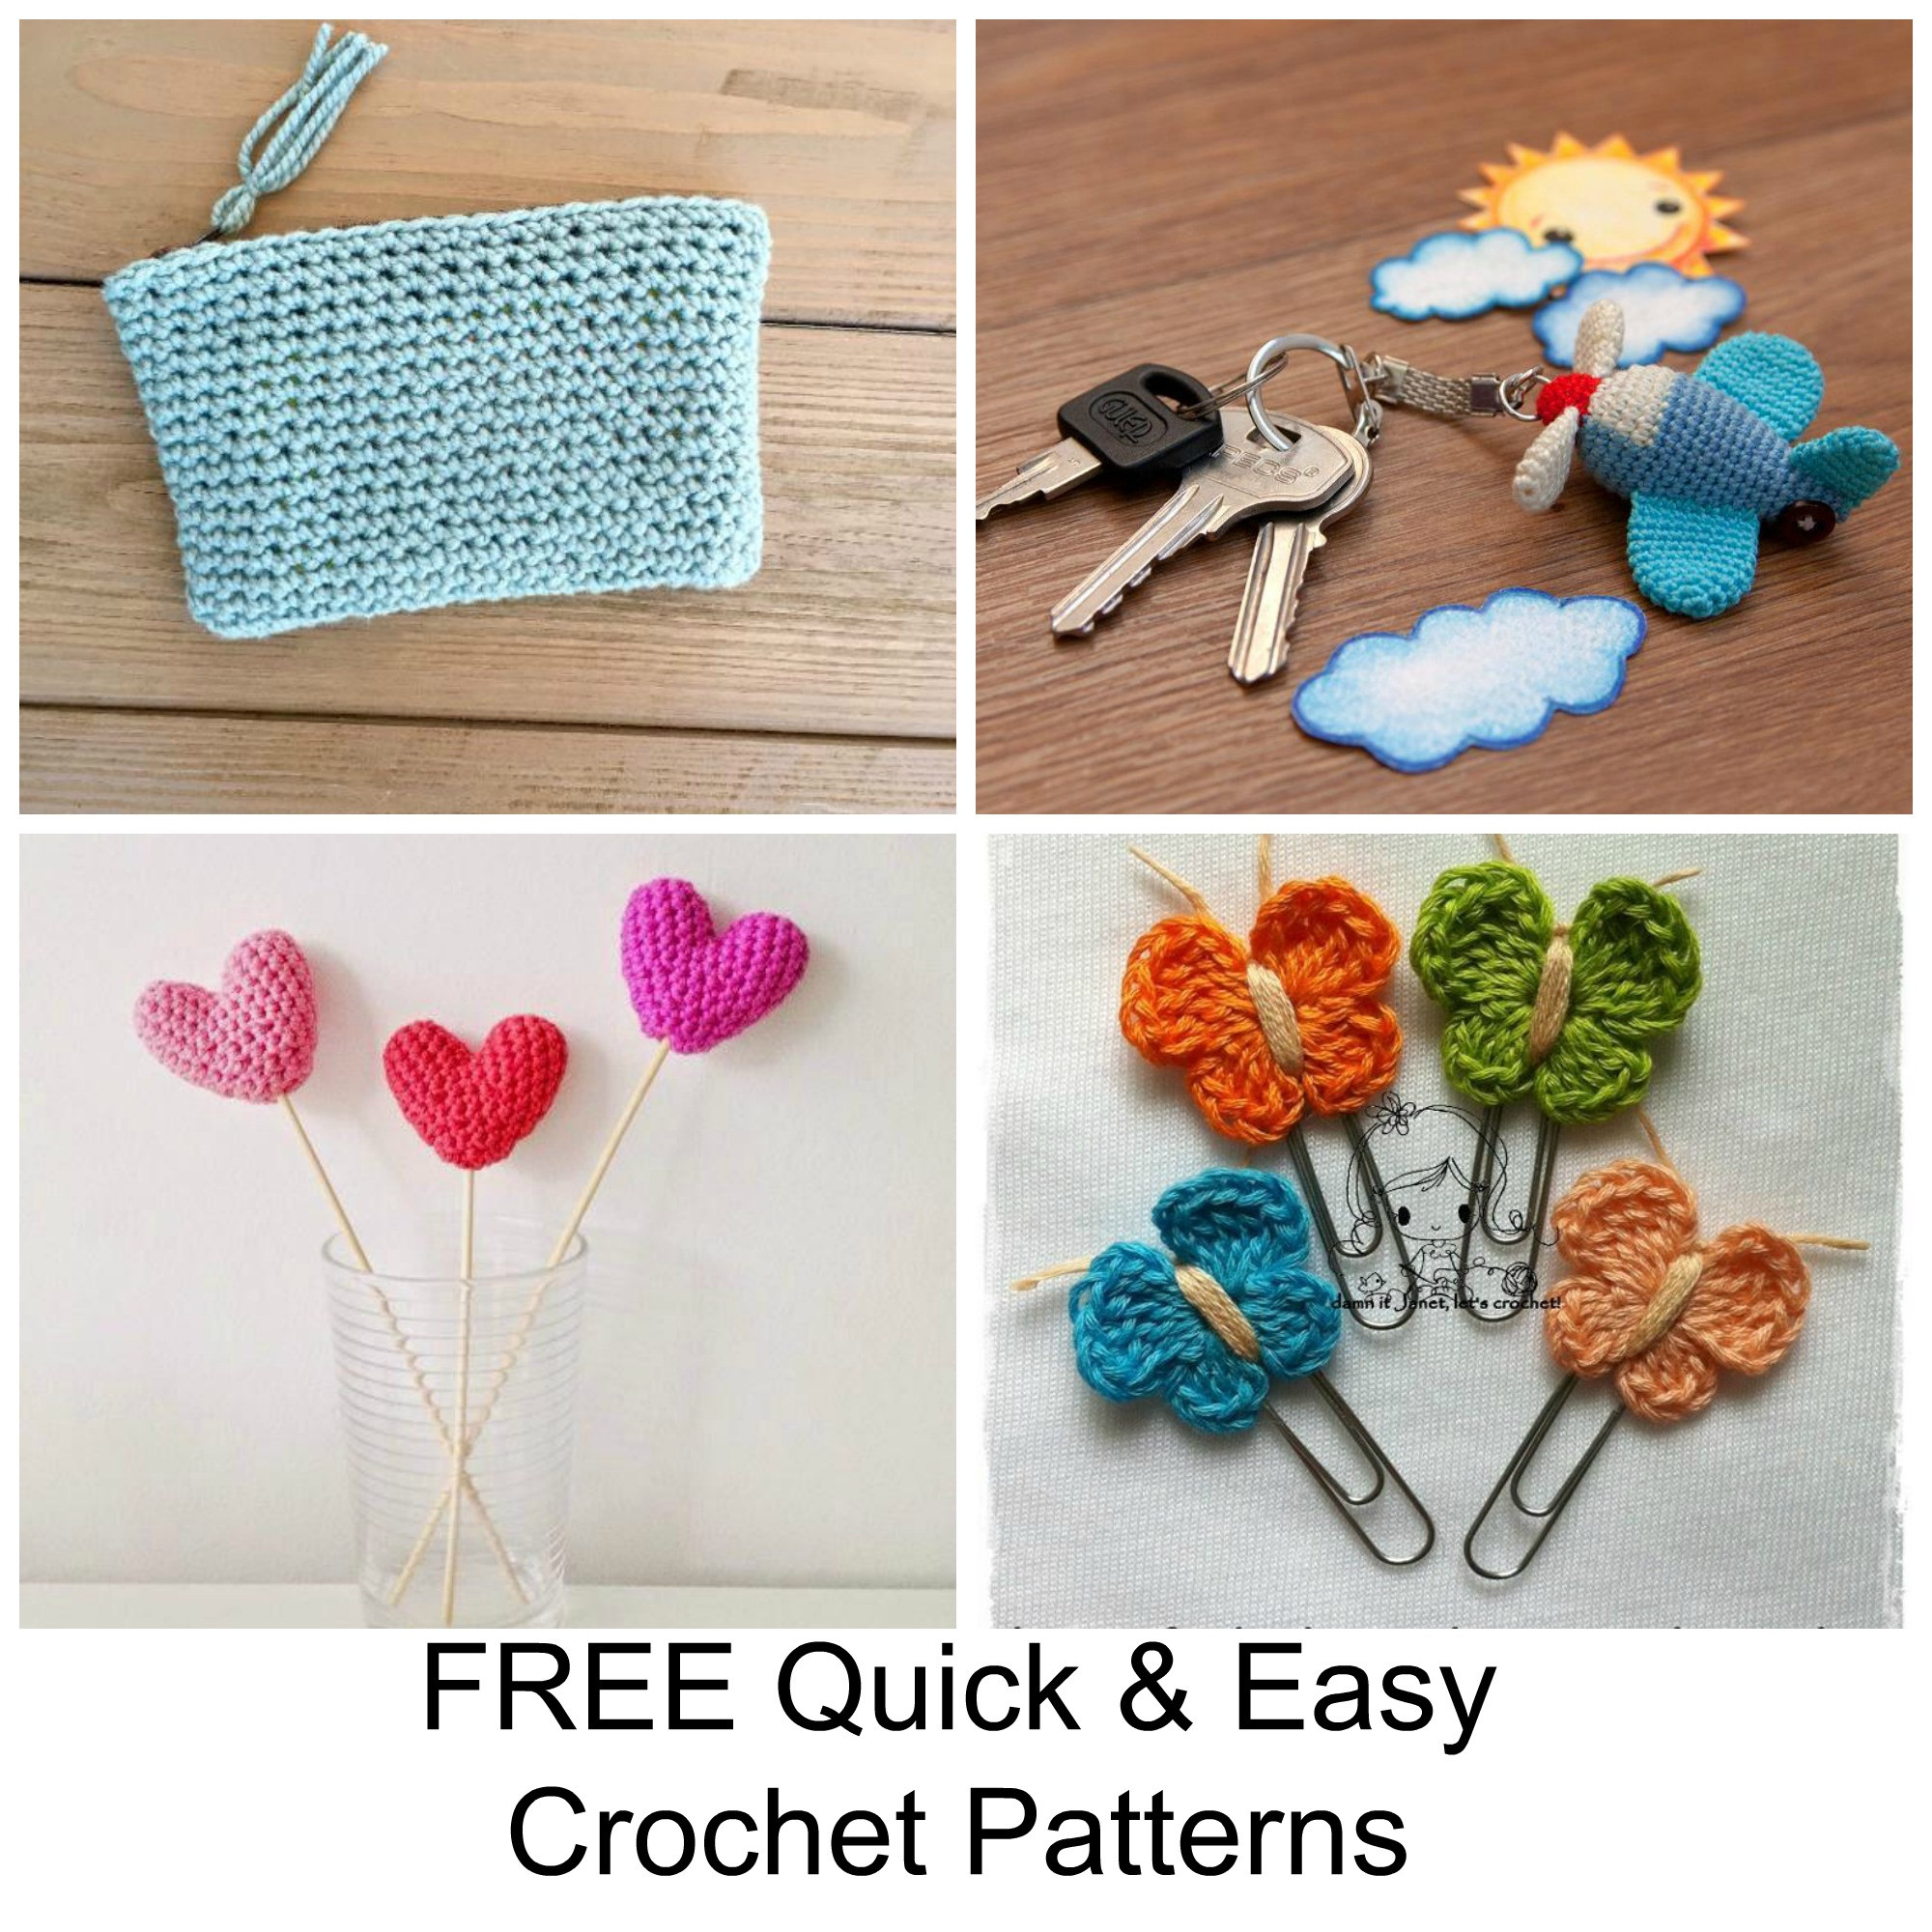 Quick and Easy Crochet Patterns Awesome 13 Free Quick and Easy Crochet Patterns Of Fresh 47 Pictures Quick and Easy Crochet Patterns